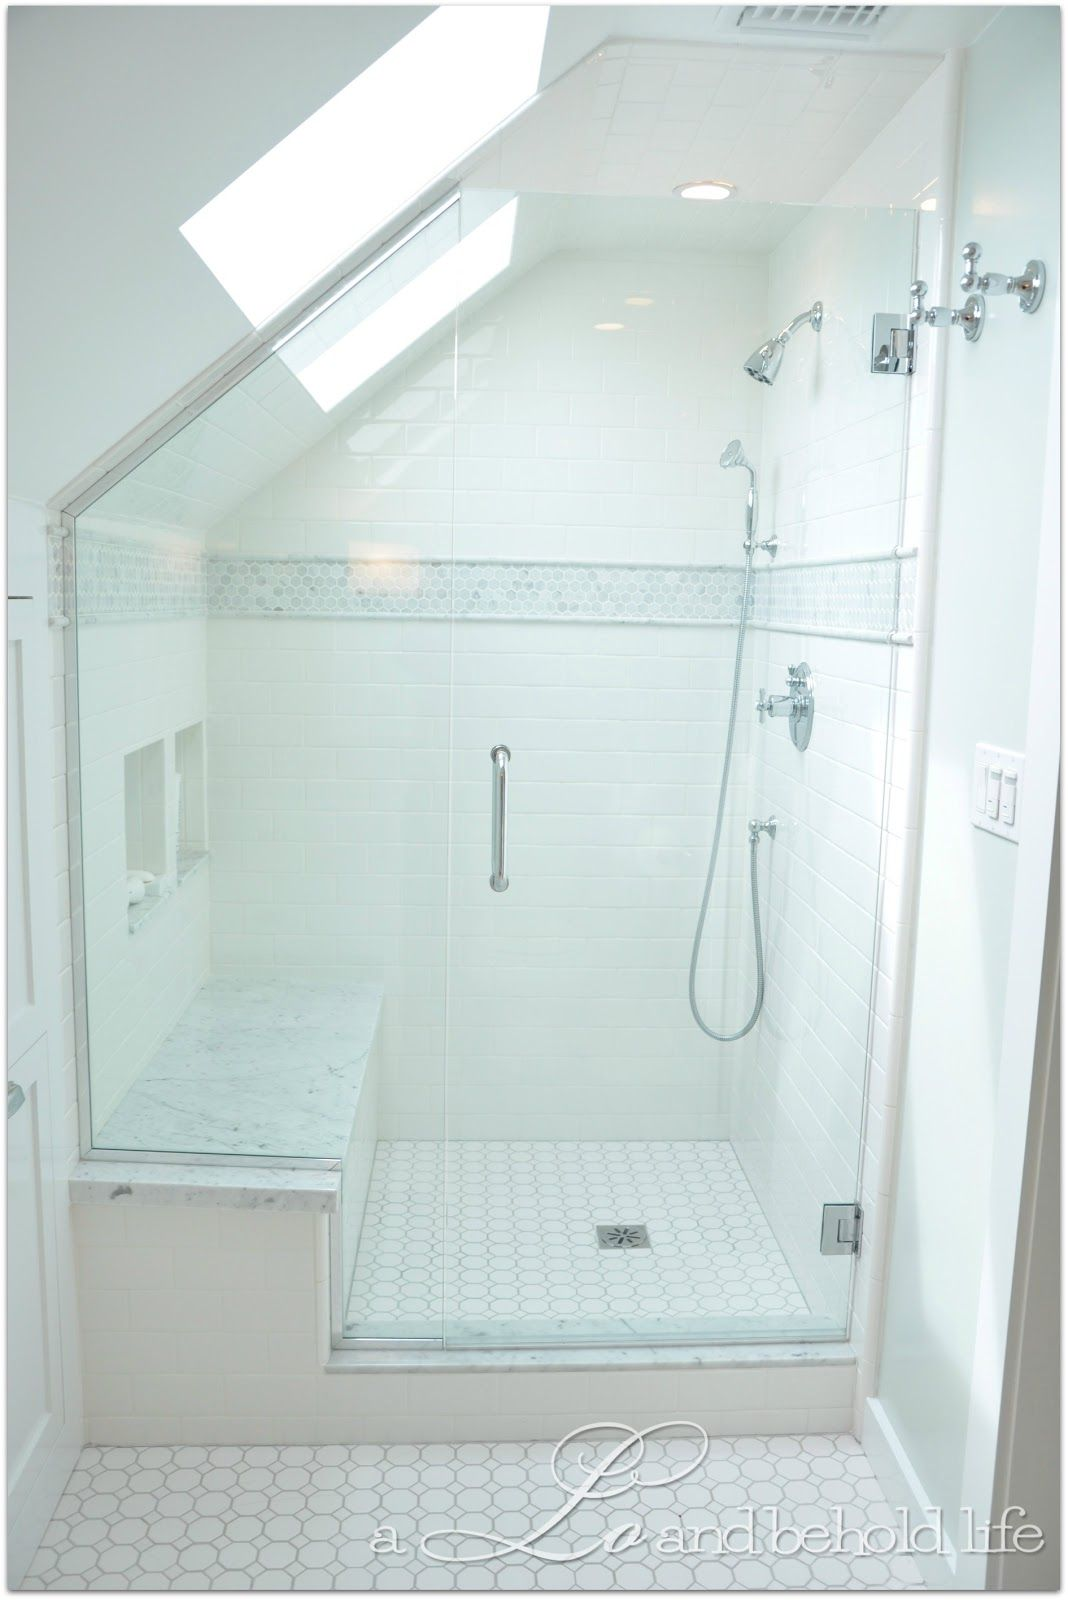 Frameless Dormer Shower with skylights via a LO and behold life ...